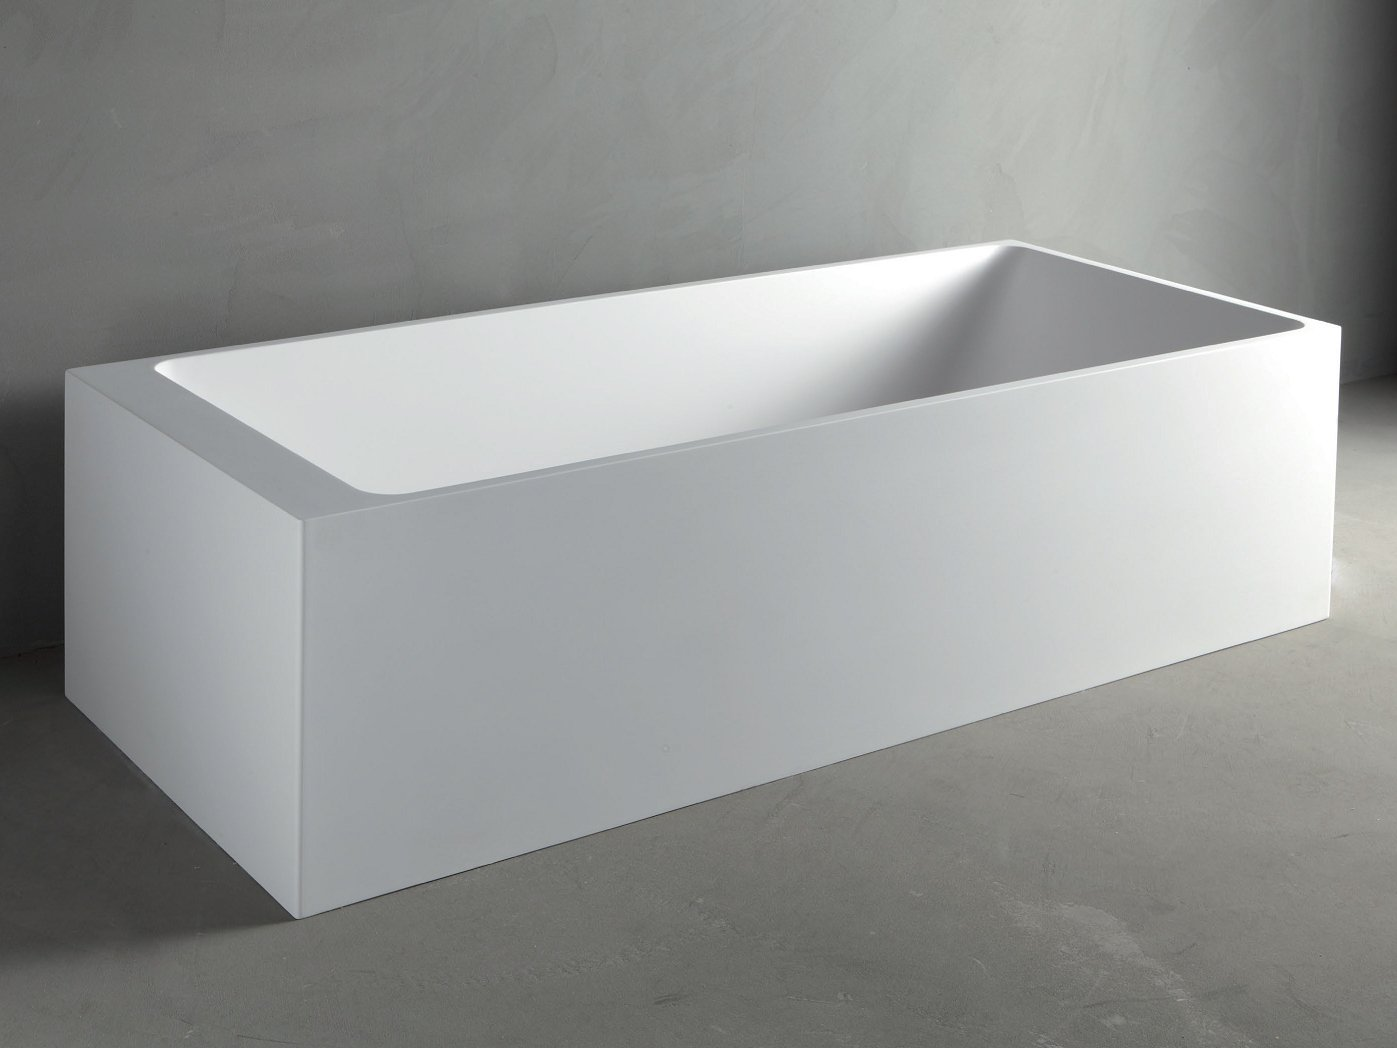 Rectangular mineralmarmo bathtub square by rifra for Rectangular bathroom layout